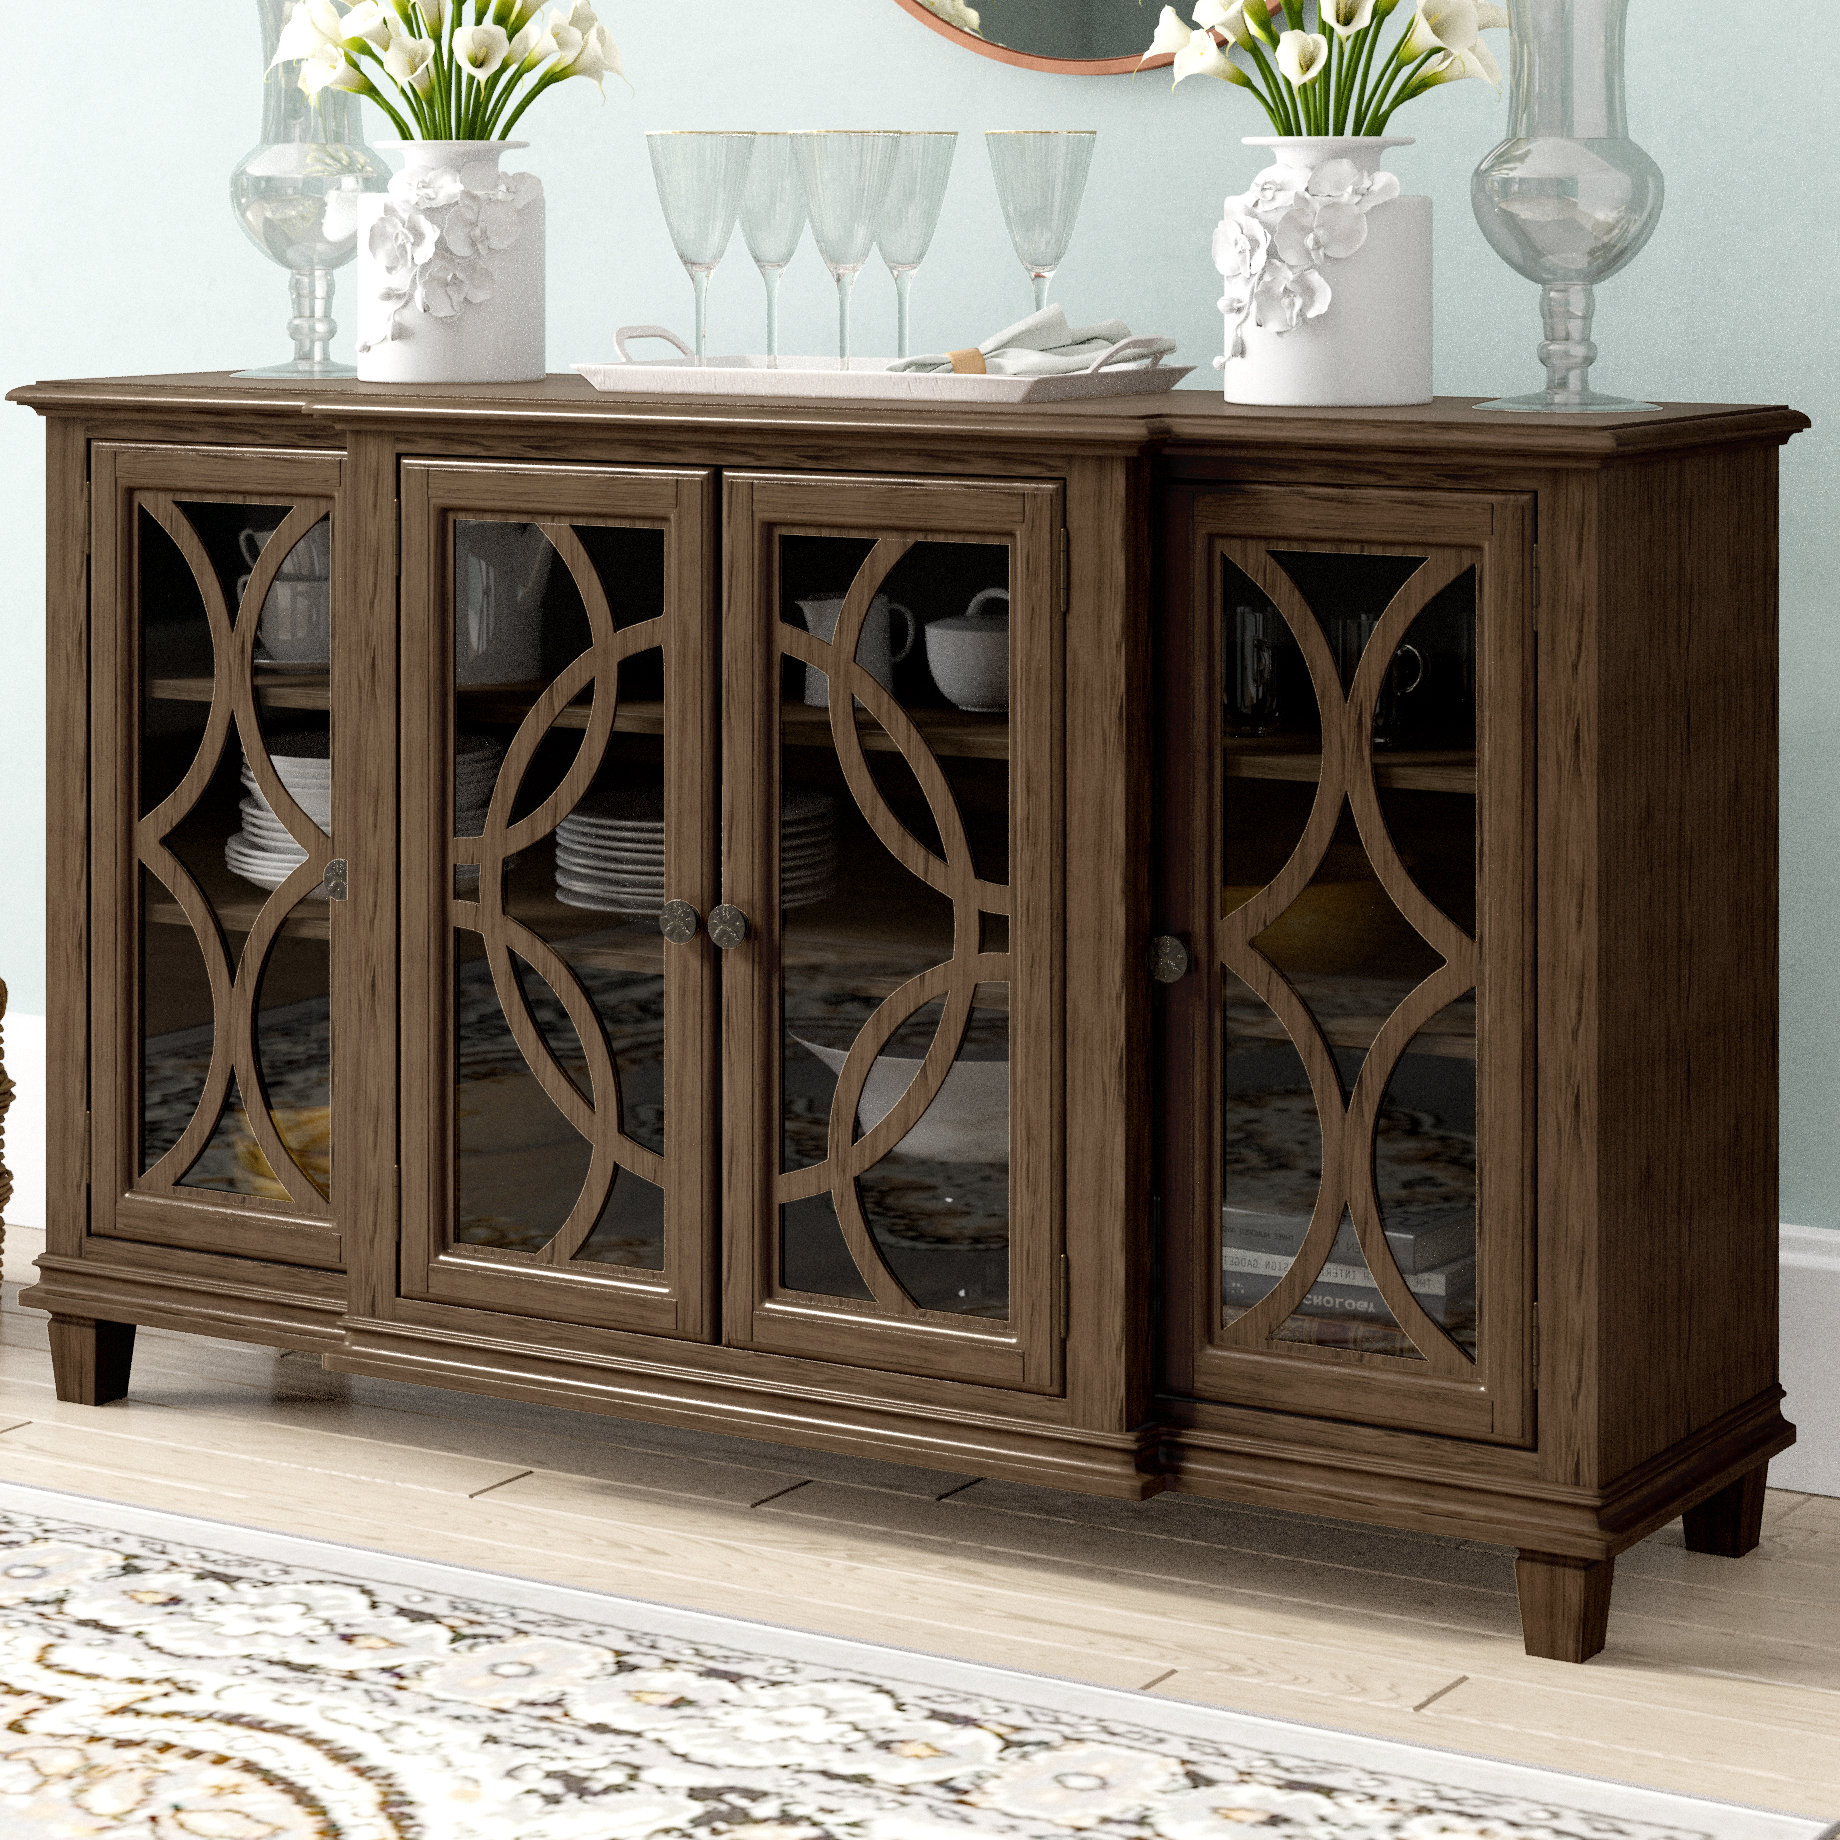 Farmhouse & Rustic Dark Brown Wood Sideboards & Buffets Intended For Well Known Seiling Sideboards (View 3 of 20)